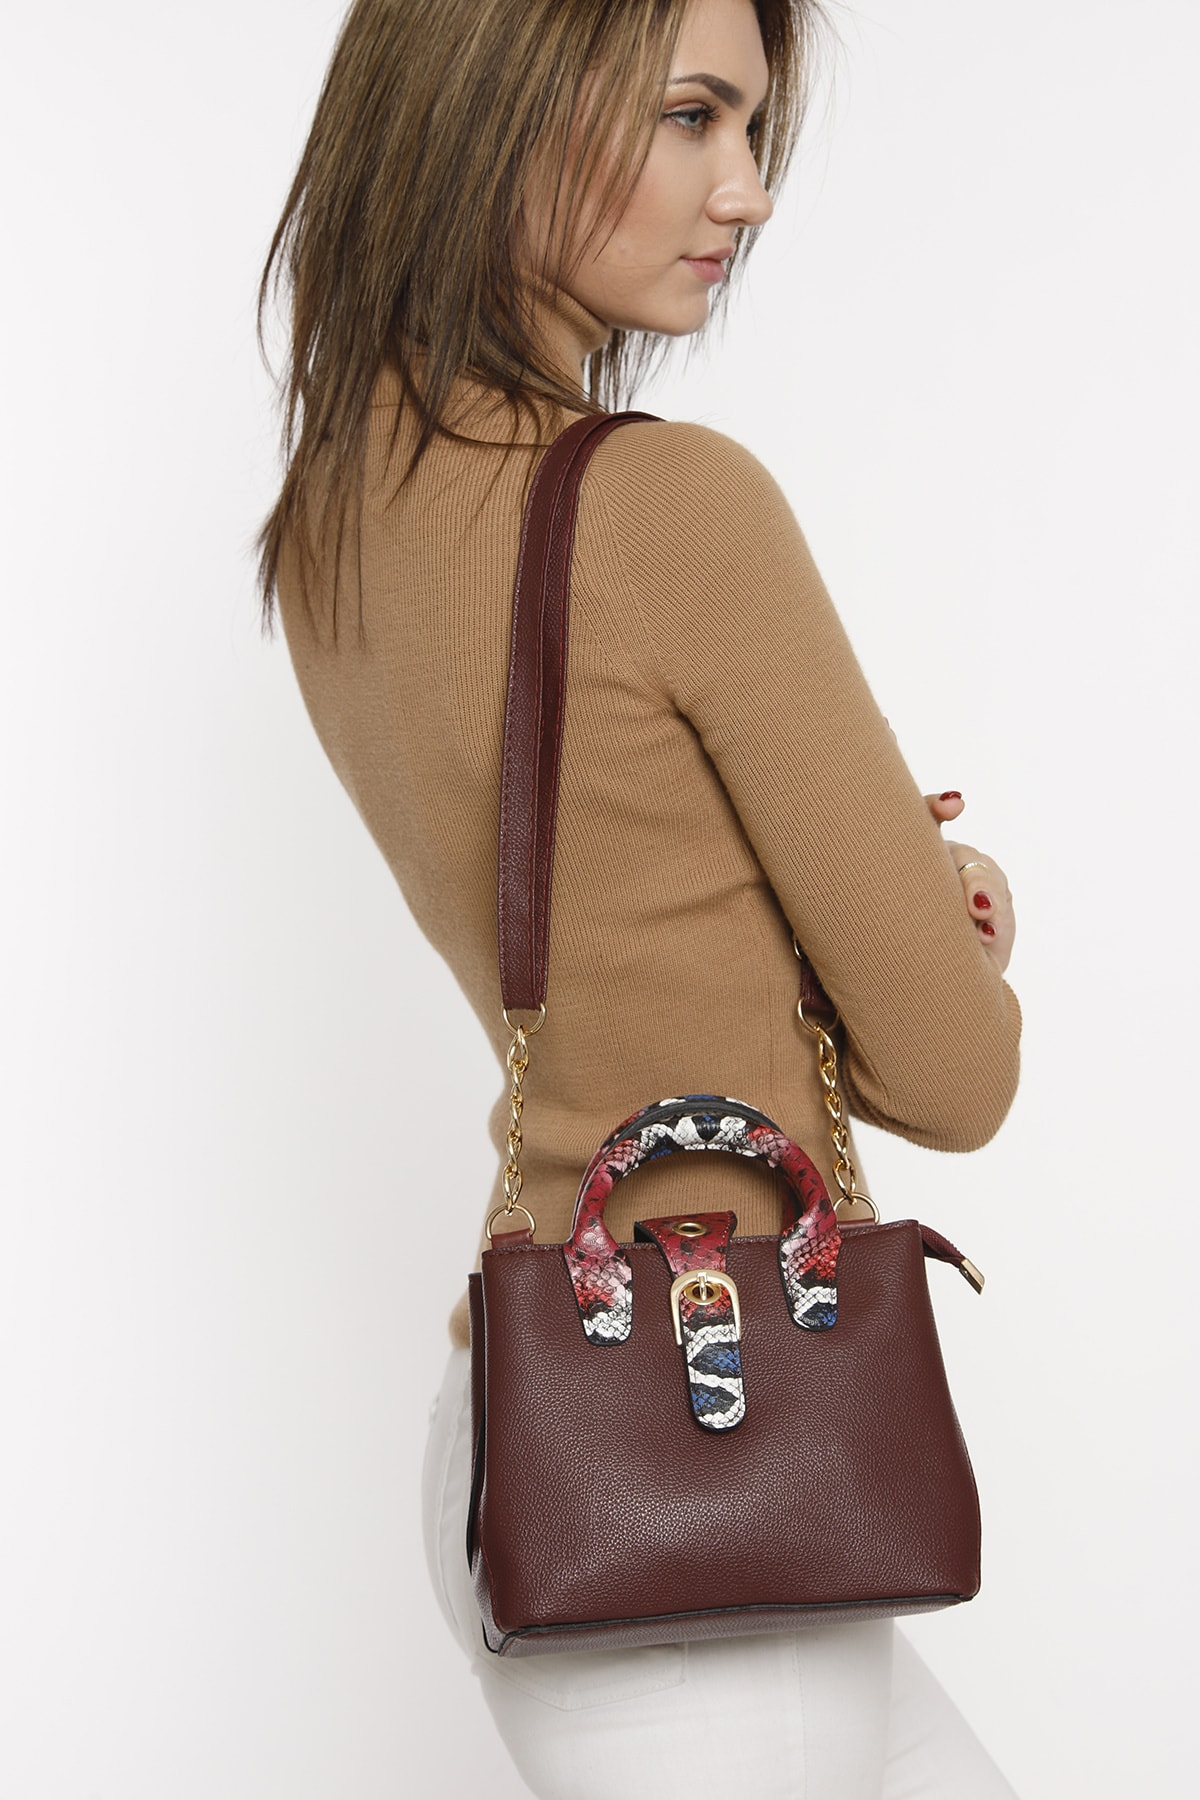 Burgundy Buckle Detailed Shoulder Bag Fashion Trend Shoulder Strap Waterproof Velvet Leather Casual Women's Shoulder Bag